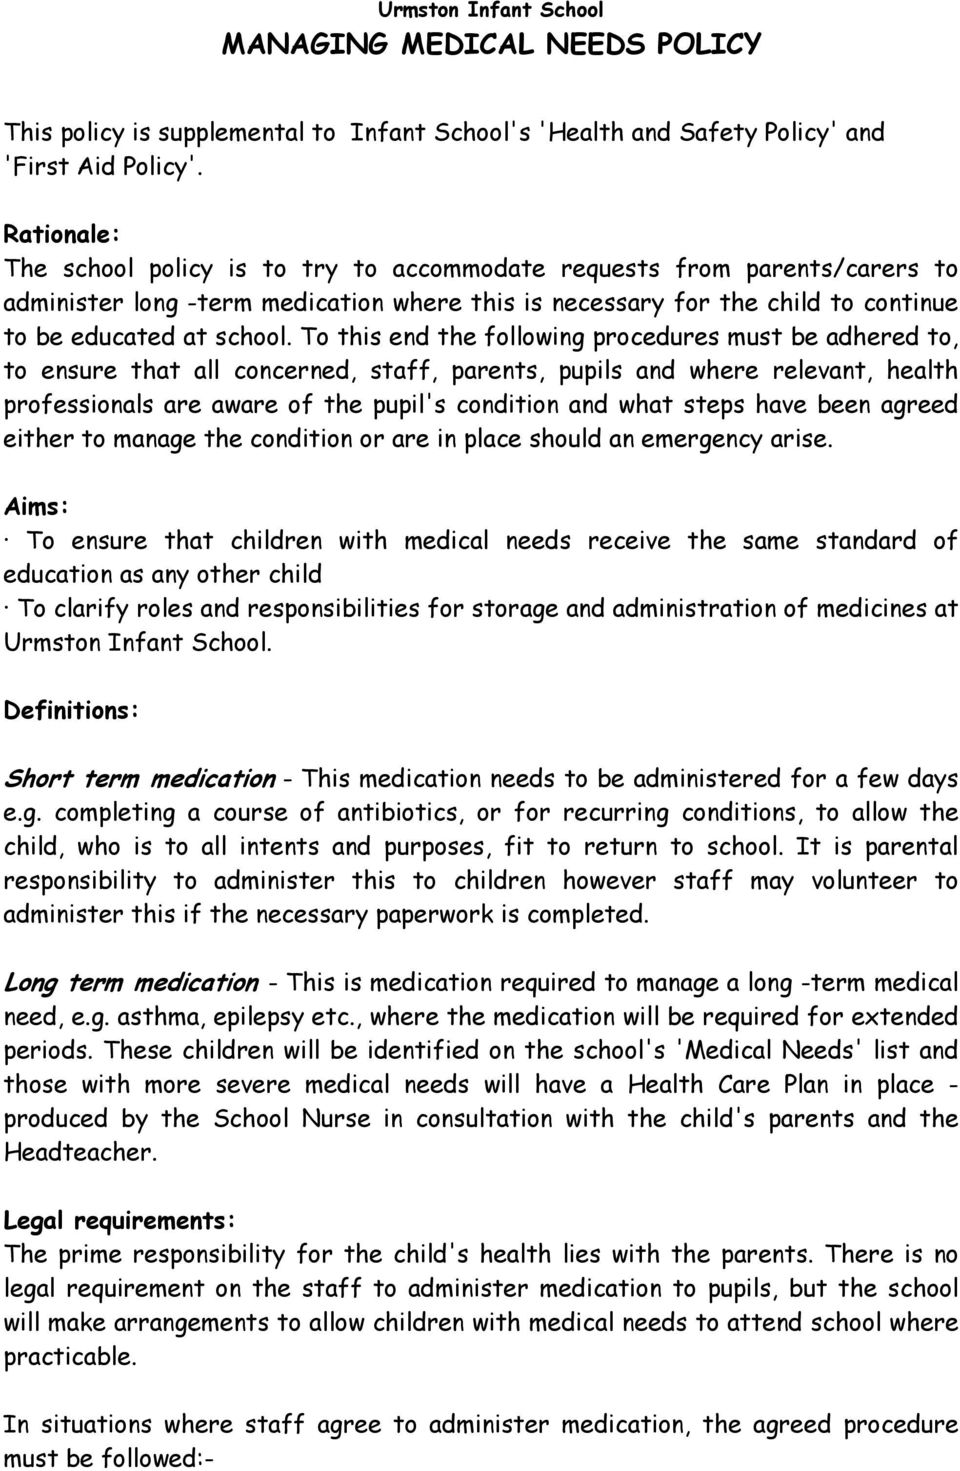 To this end the following procedures must be adhered to, to ensure that all concerned, staff, parents, pupils and where relevant, health professionals are aware of the pupil's condition and what